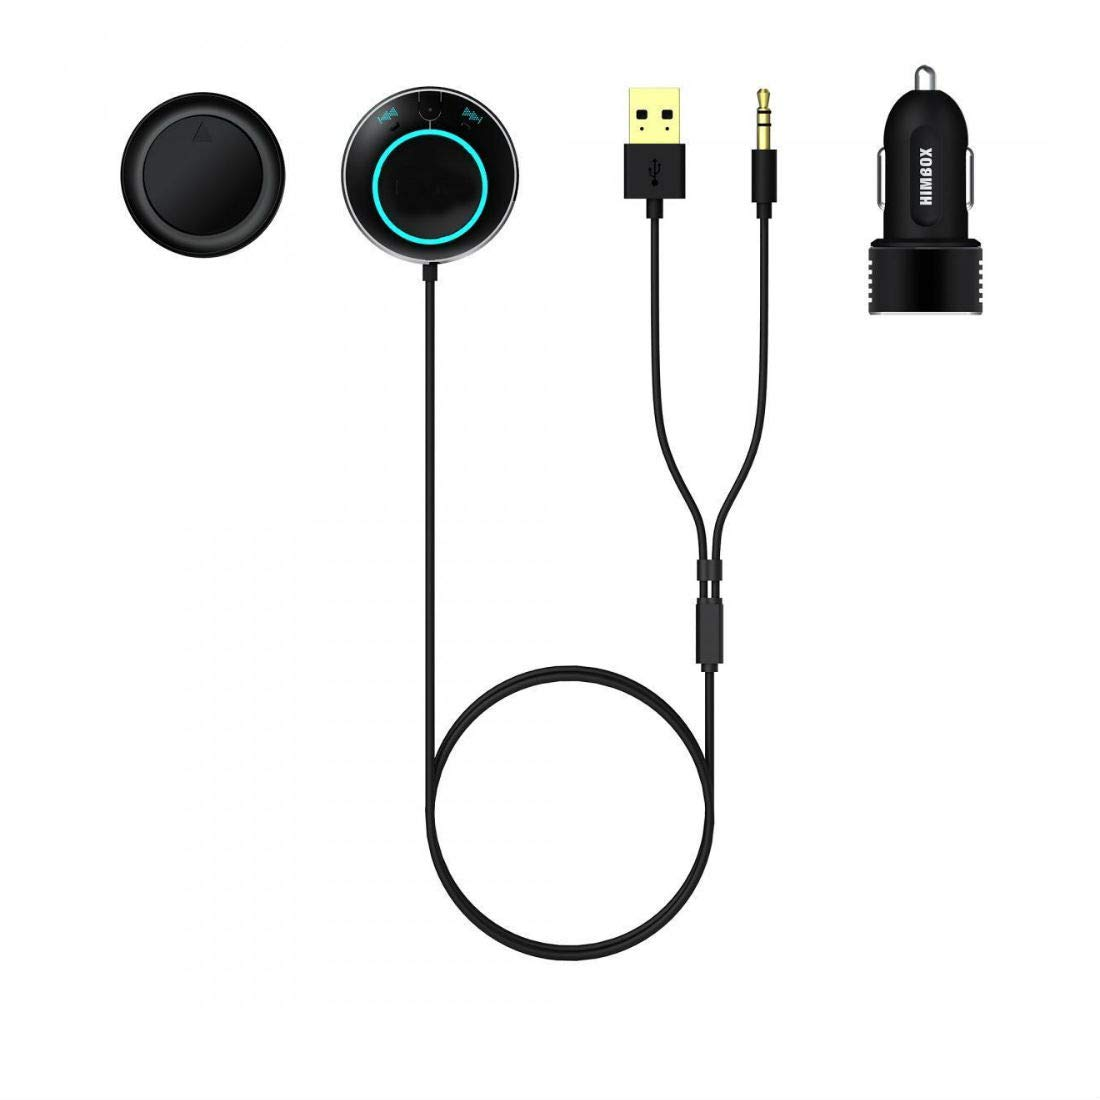 ver Himbox HB01 Bluetooth 4.0 Hands-Free Car Kit